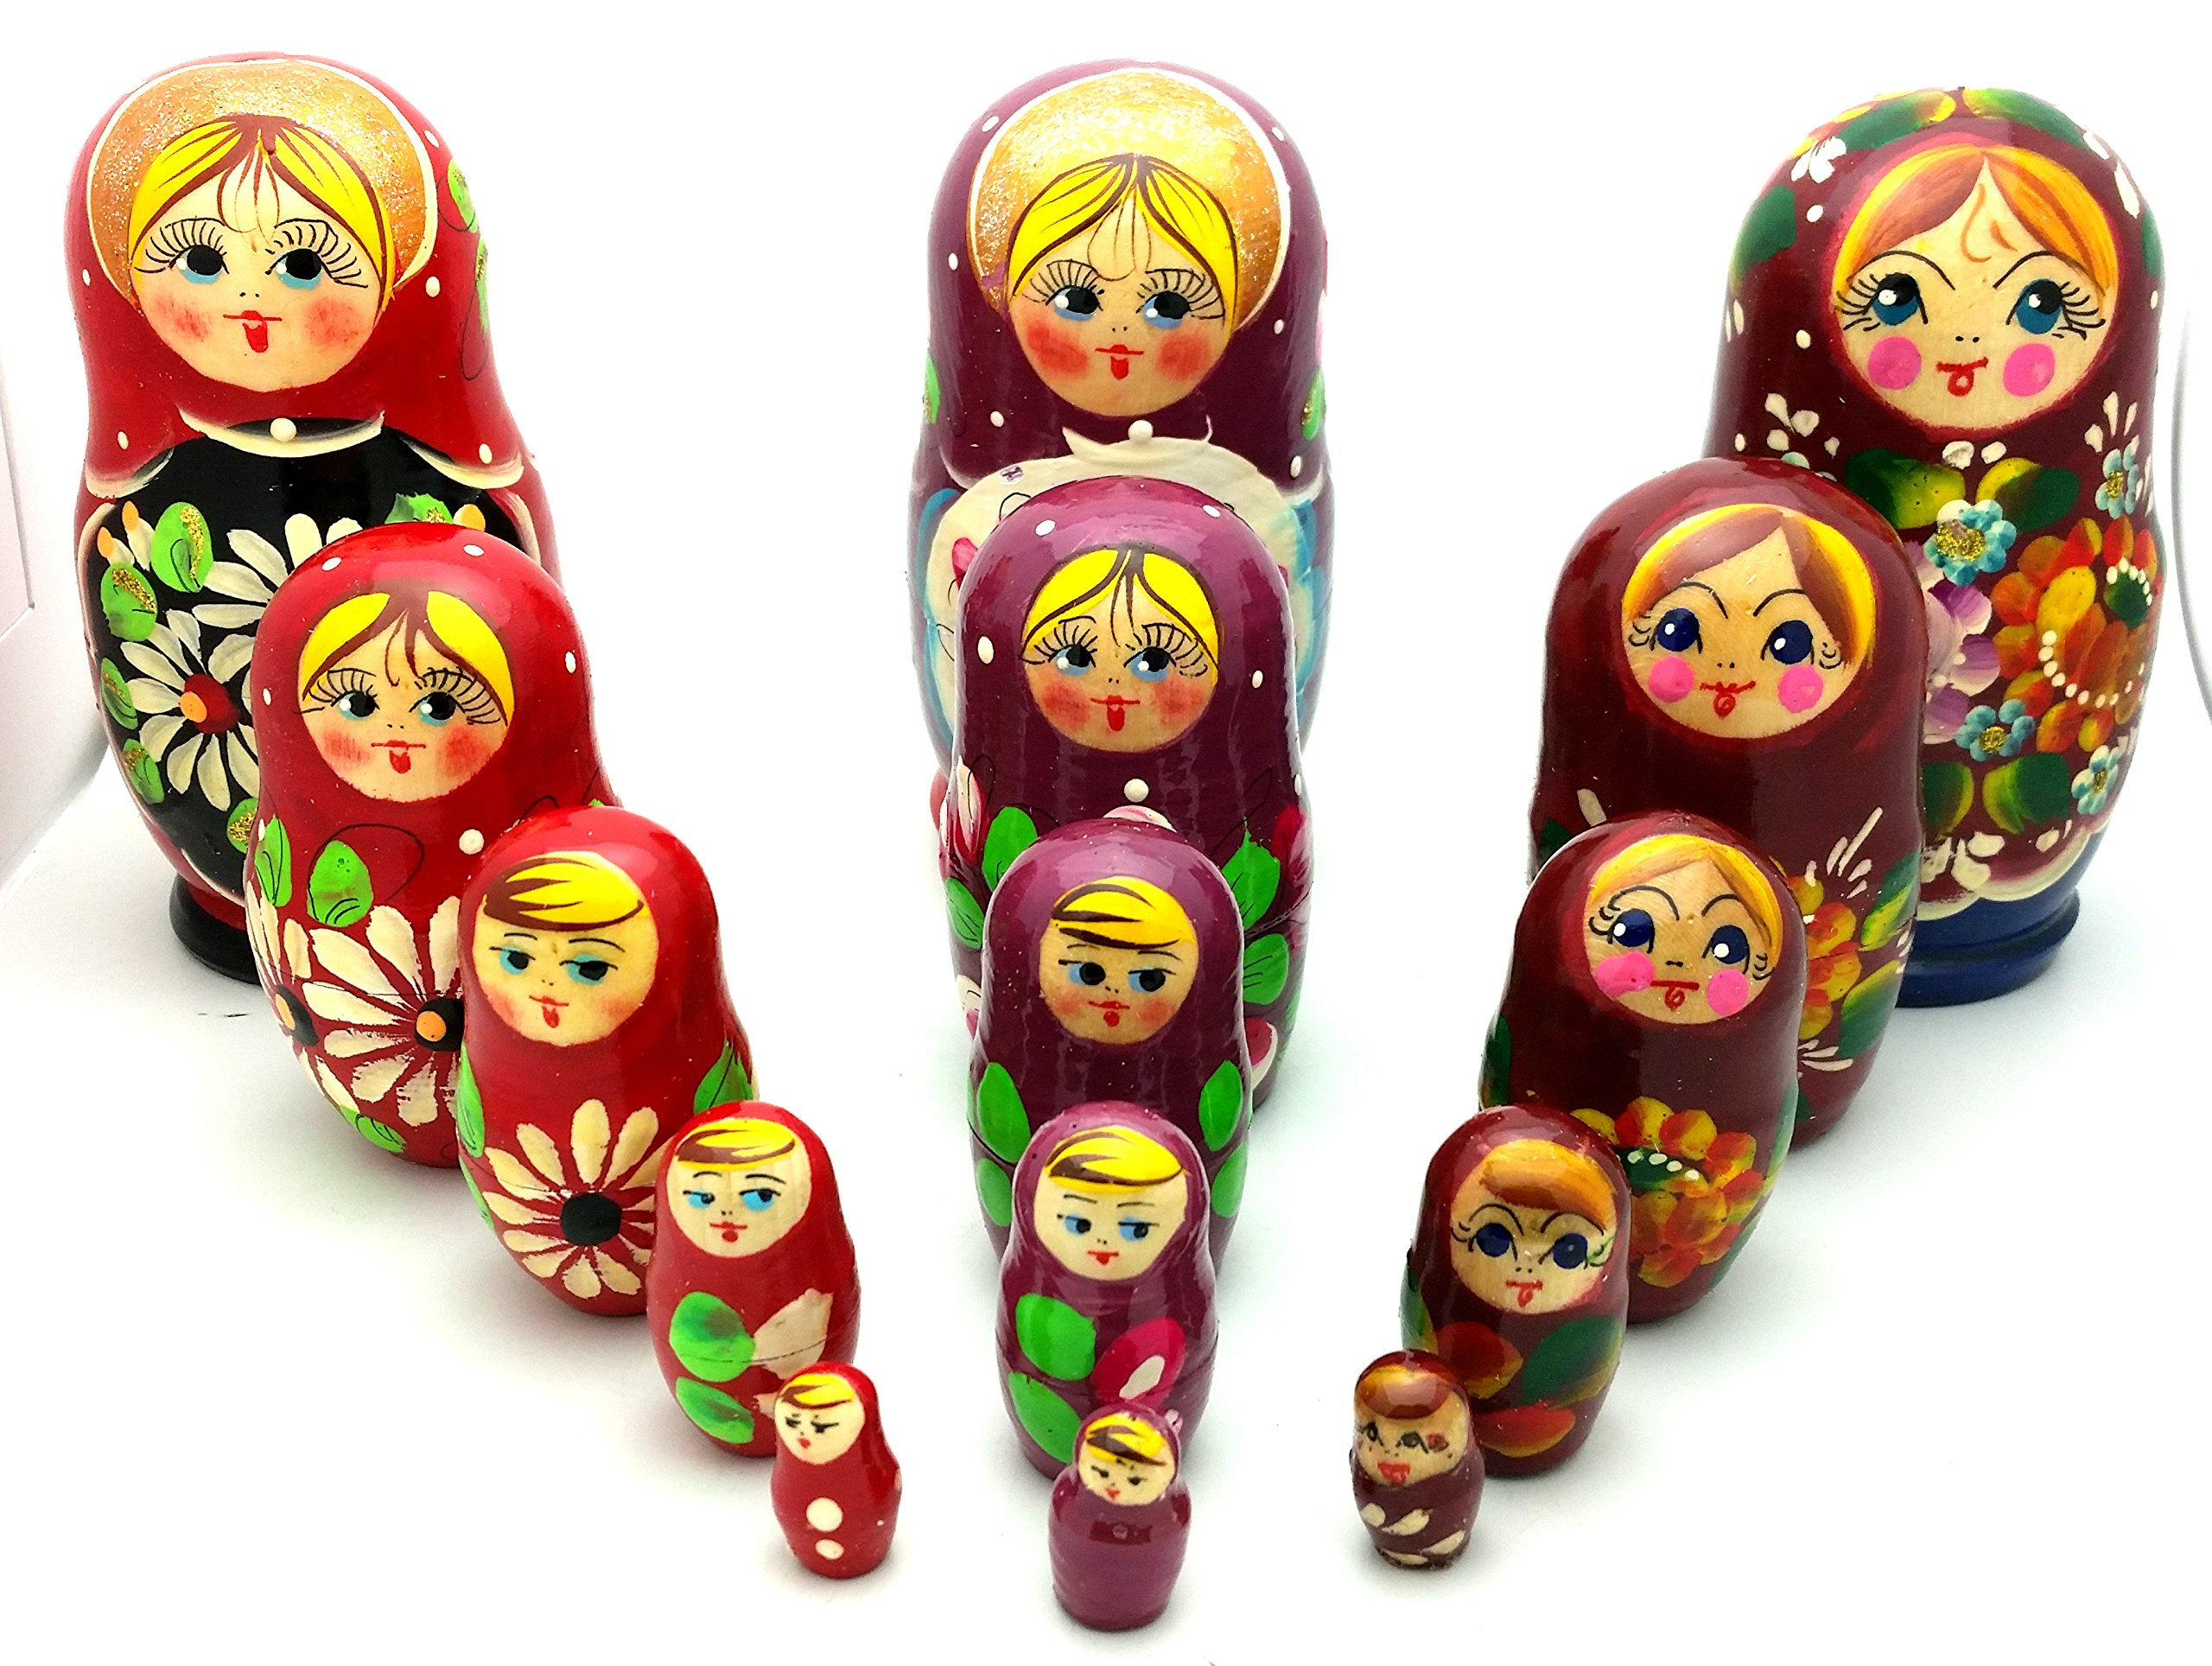 Lot of 3 Sets Russian Traditional Nesting Stacking Wooden Dolls Each Matryoshka Babushka set contains 5 dolls by BuyRussianGifts (Image #1)